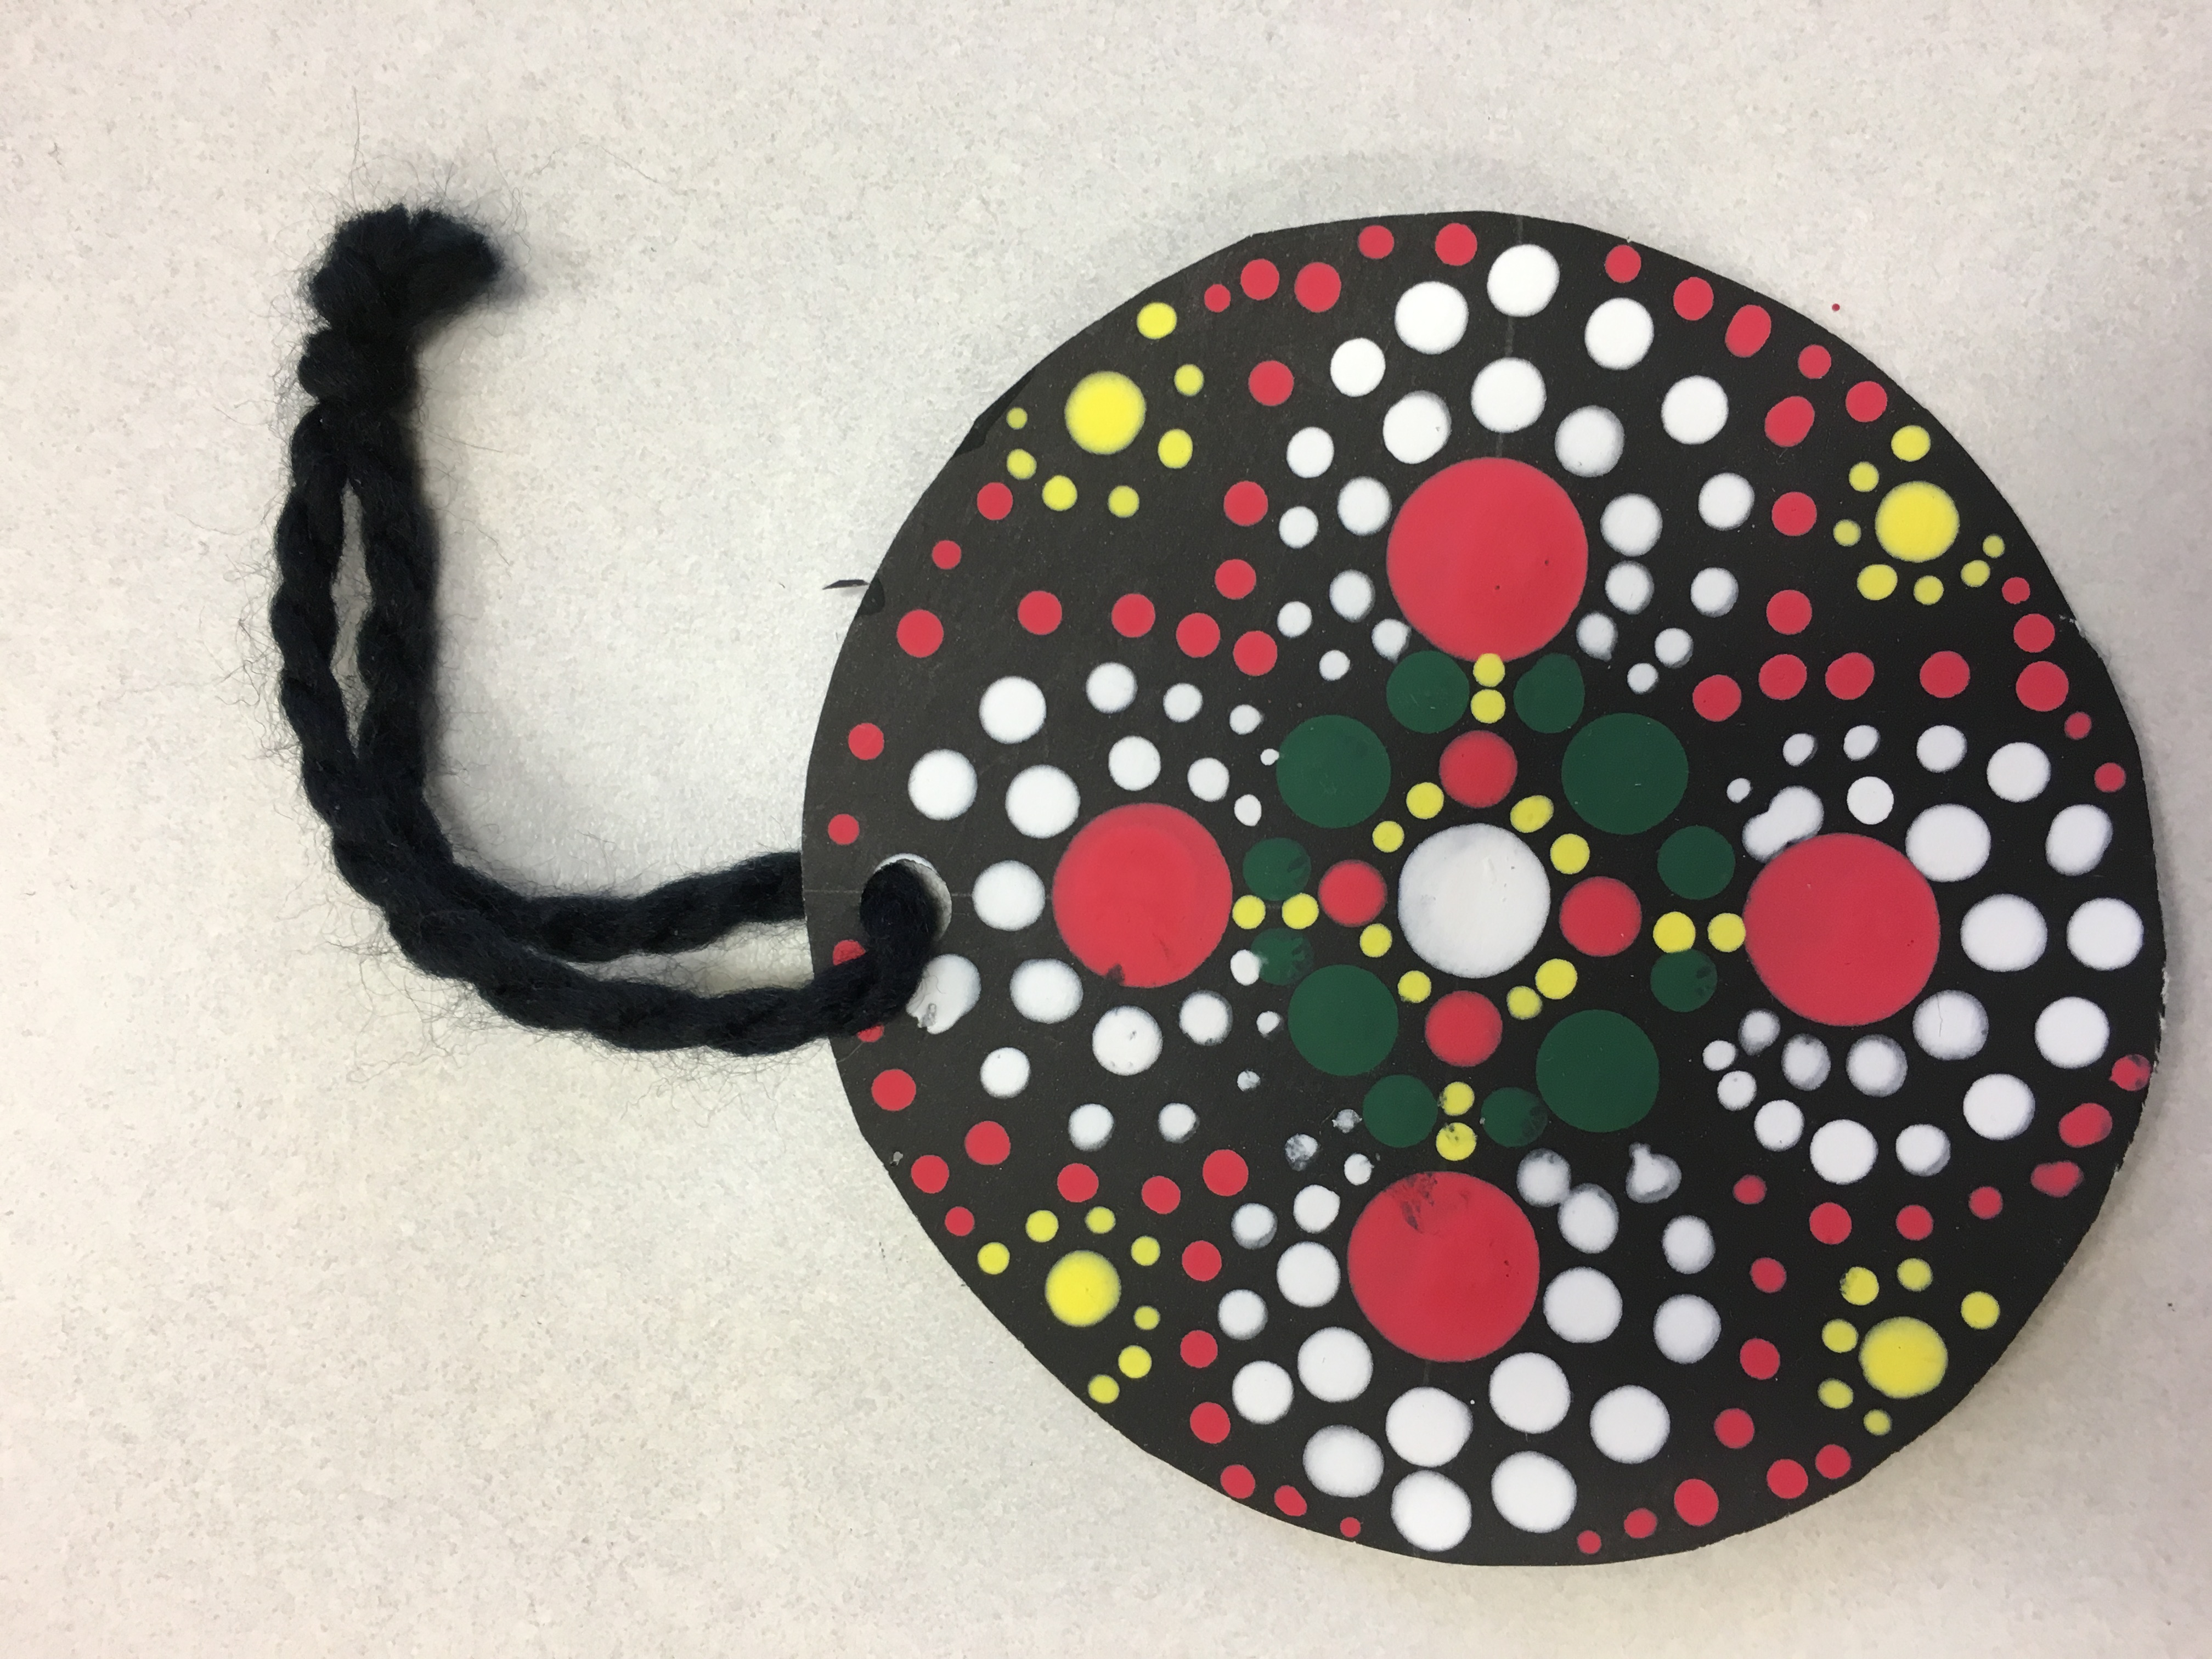 Mandala Dot Painting for Adults and Youth | Ottawa Public Library